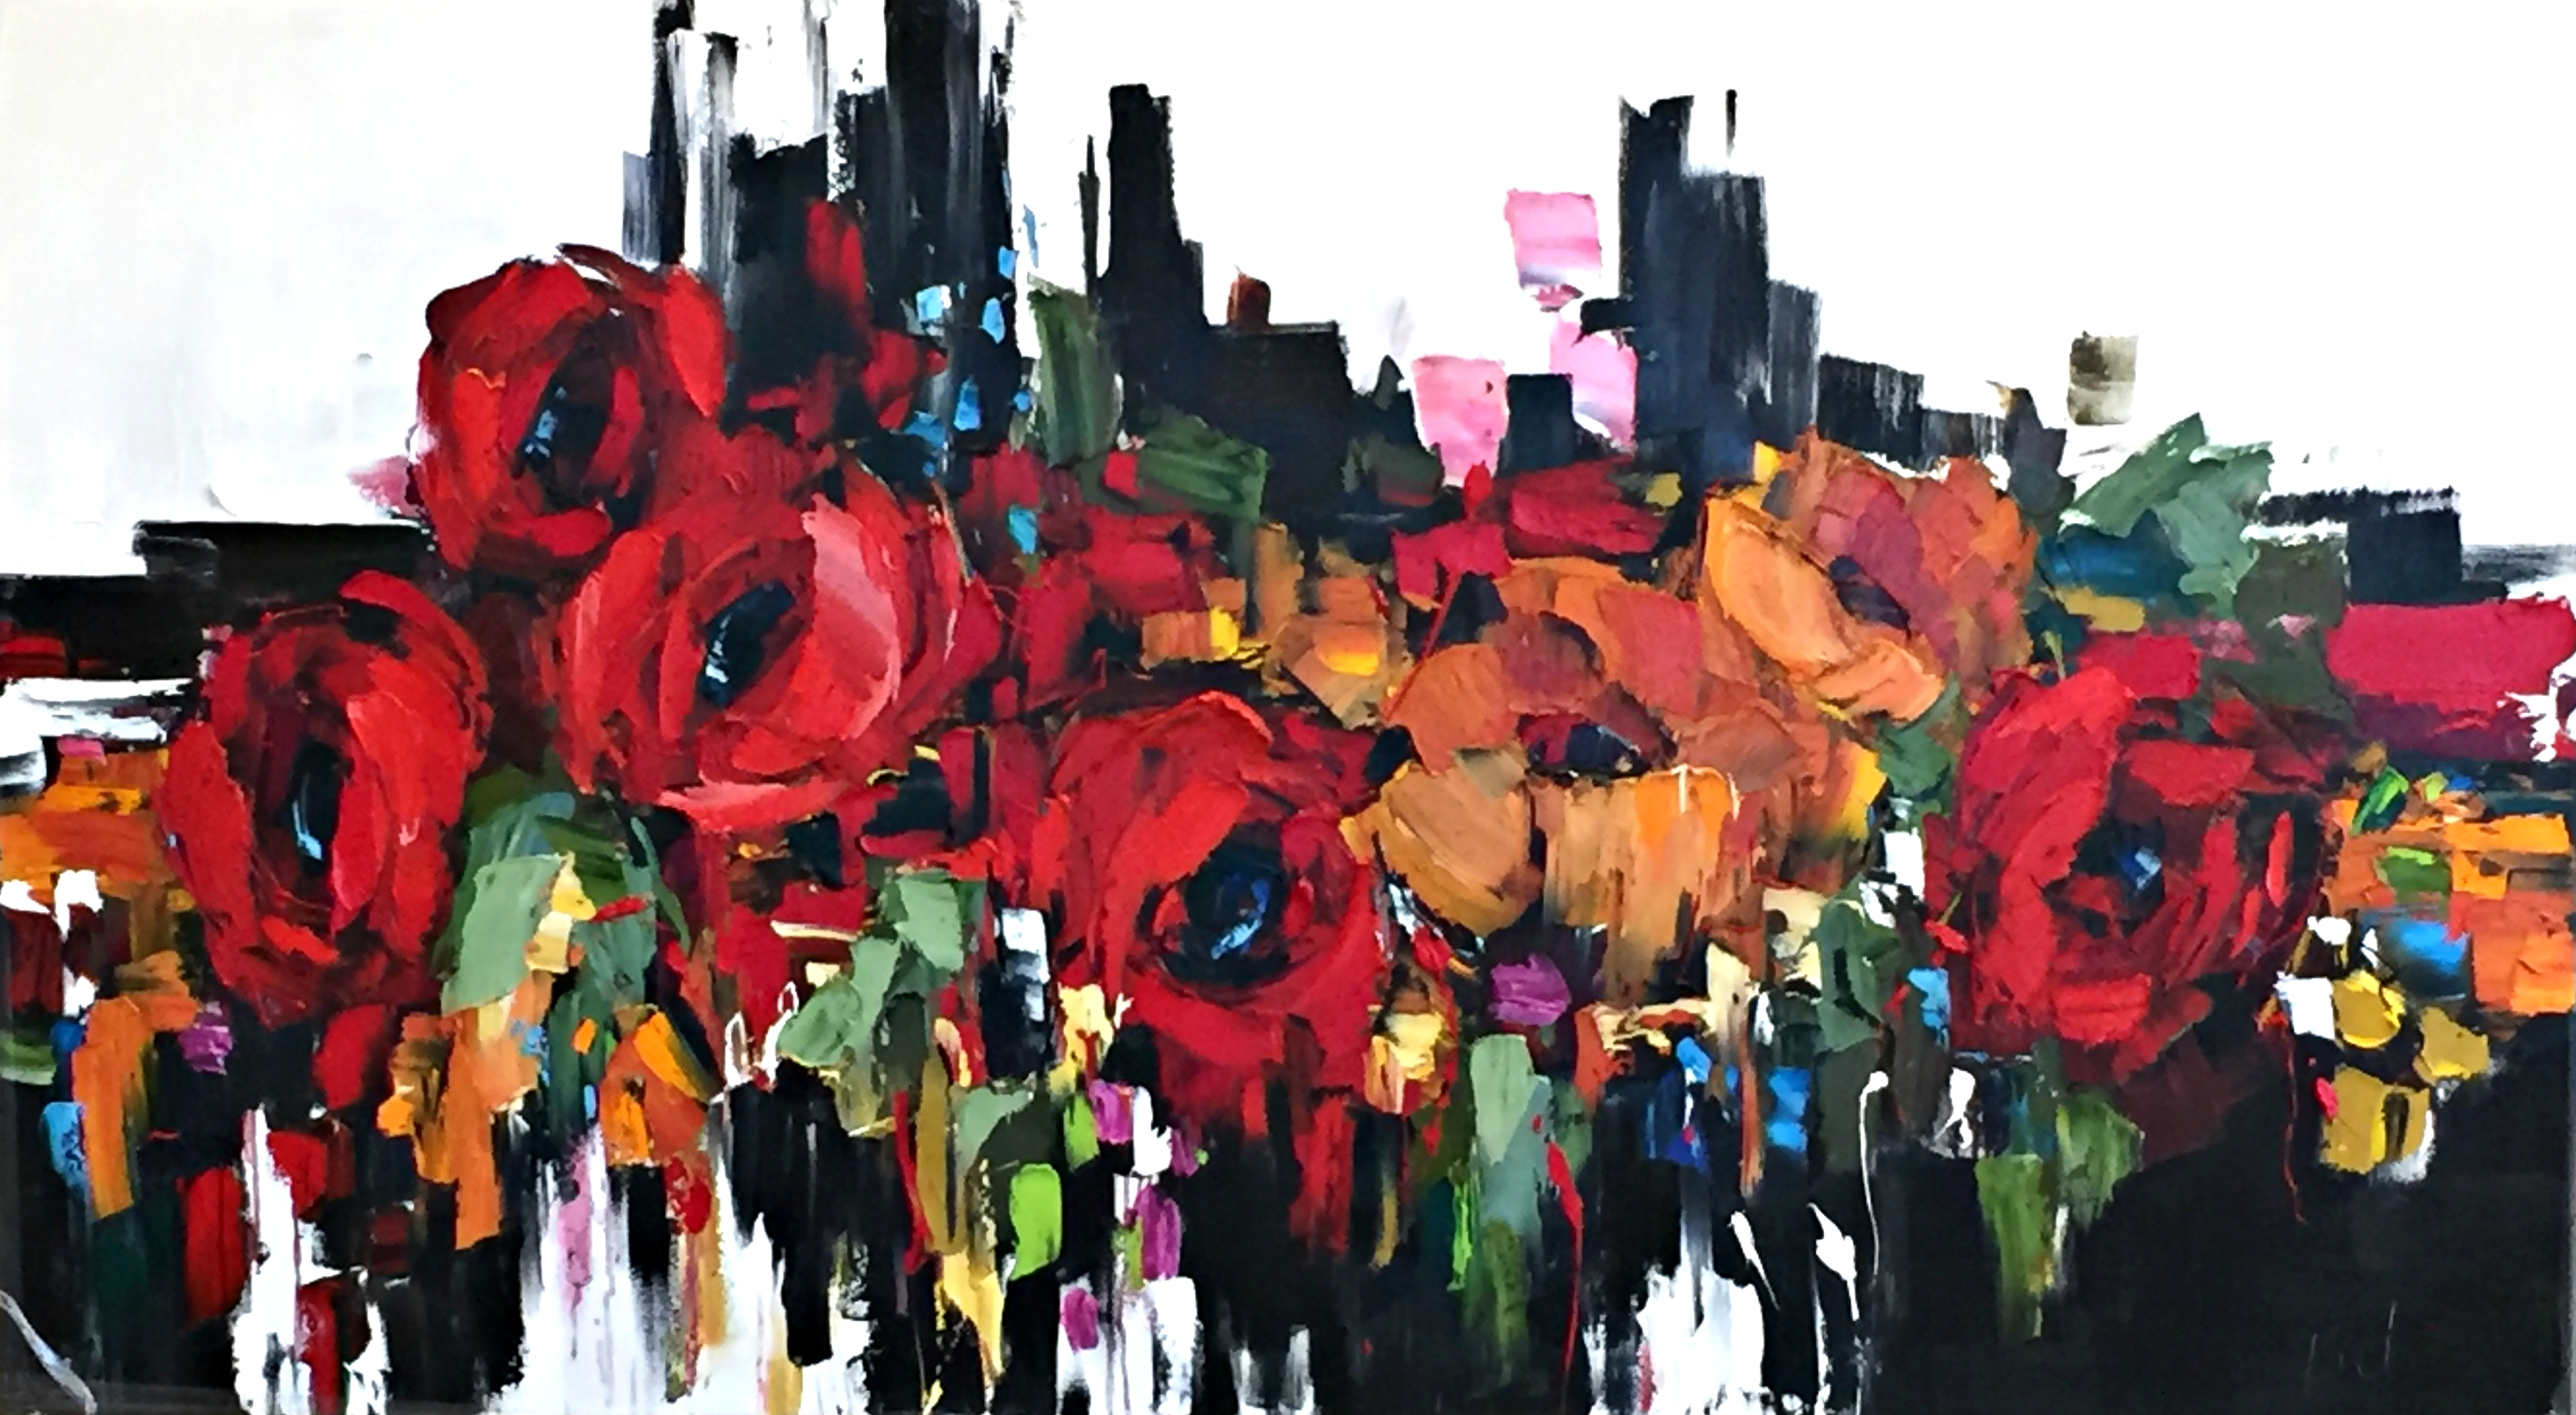 Let it Shine, oil floral painting by Kimberly Kiel | Effusion Art Gallery + Cast Glass Studio, Invermere BC